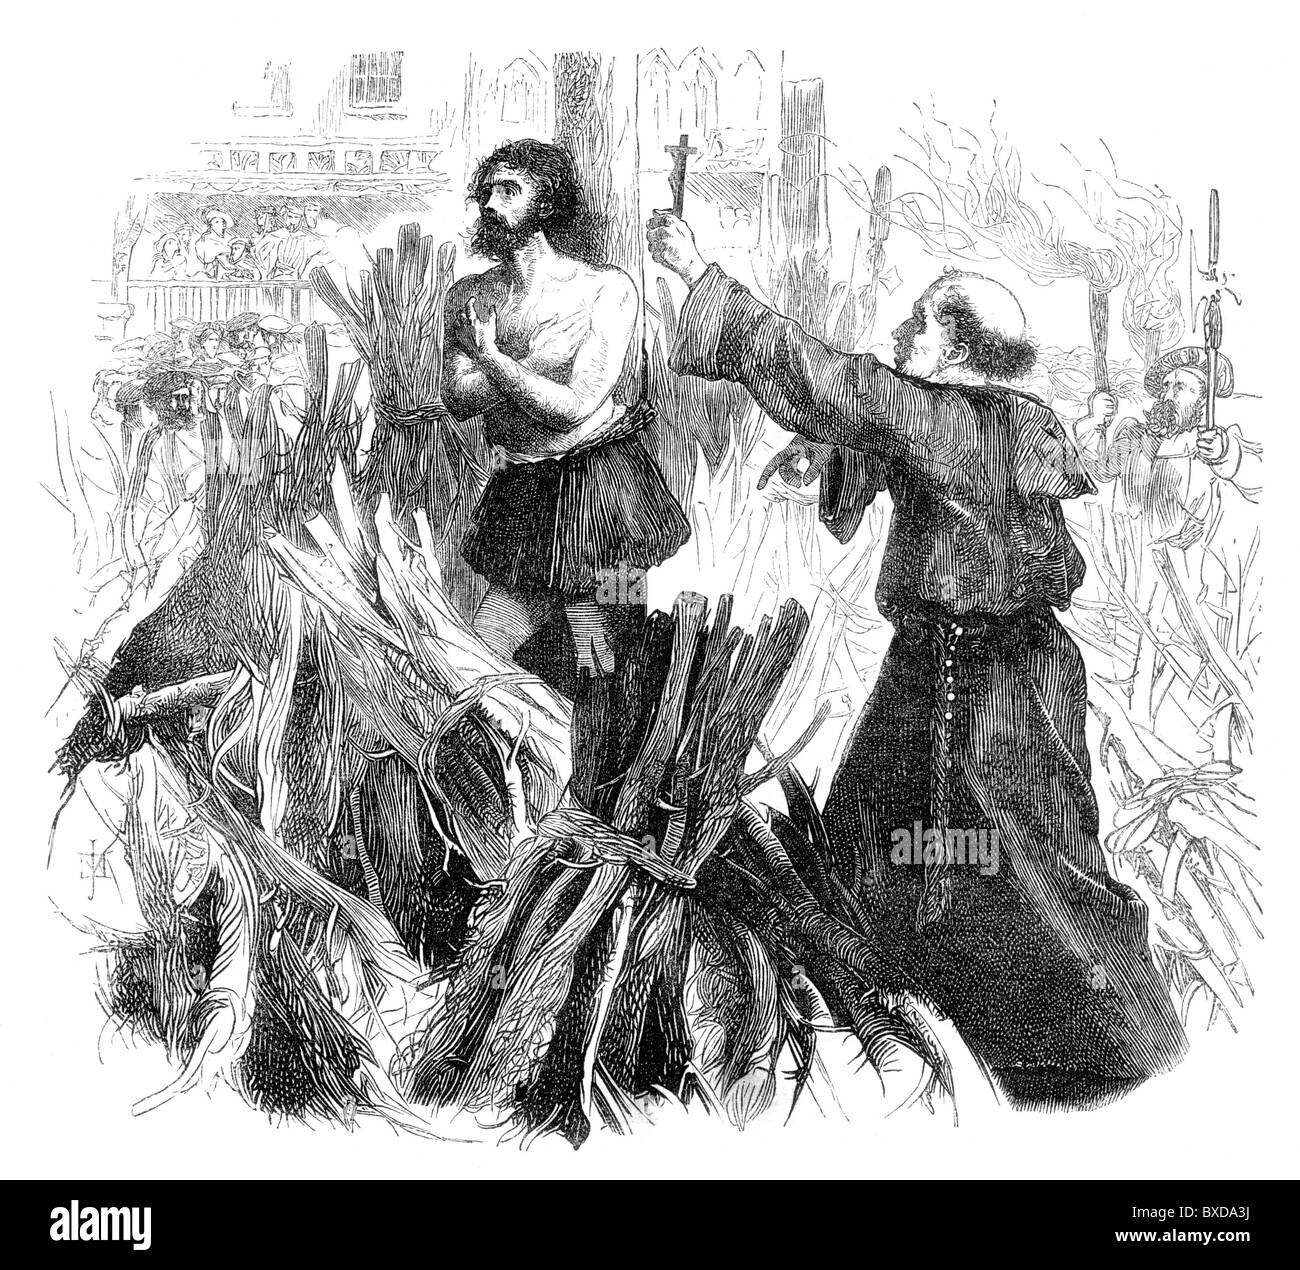 A Protestant Martyr being burned at the stake; Black and White Illustration; - Stock Image